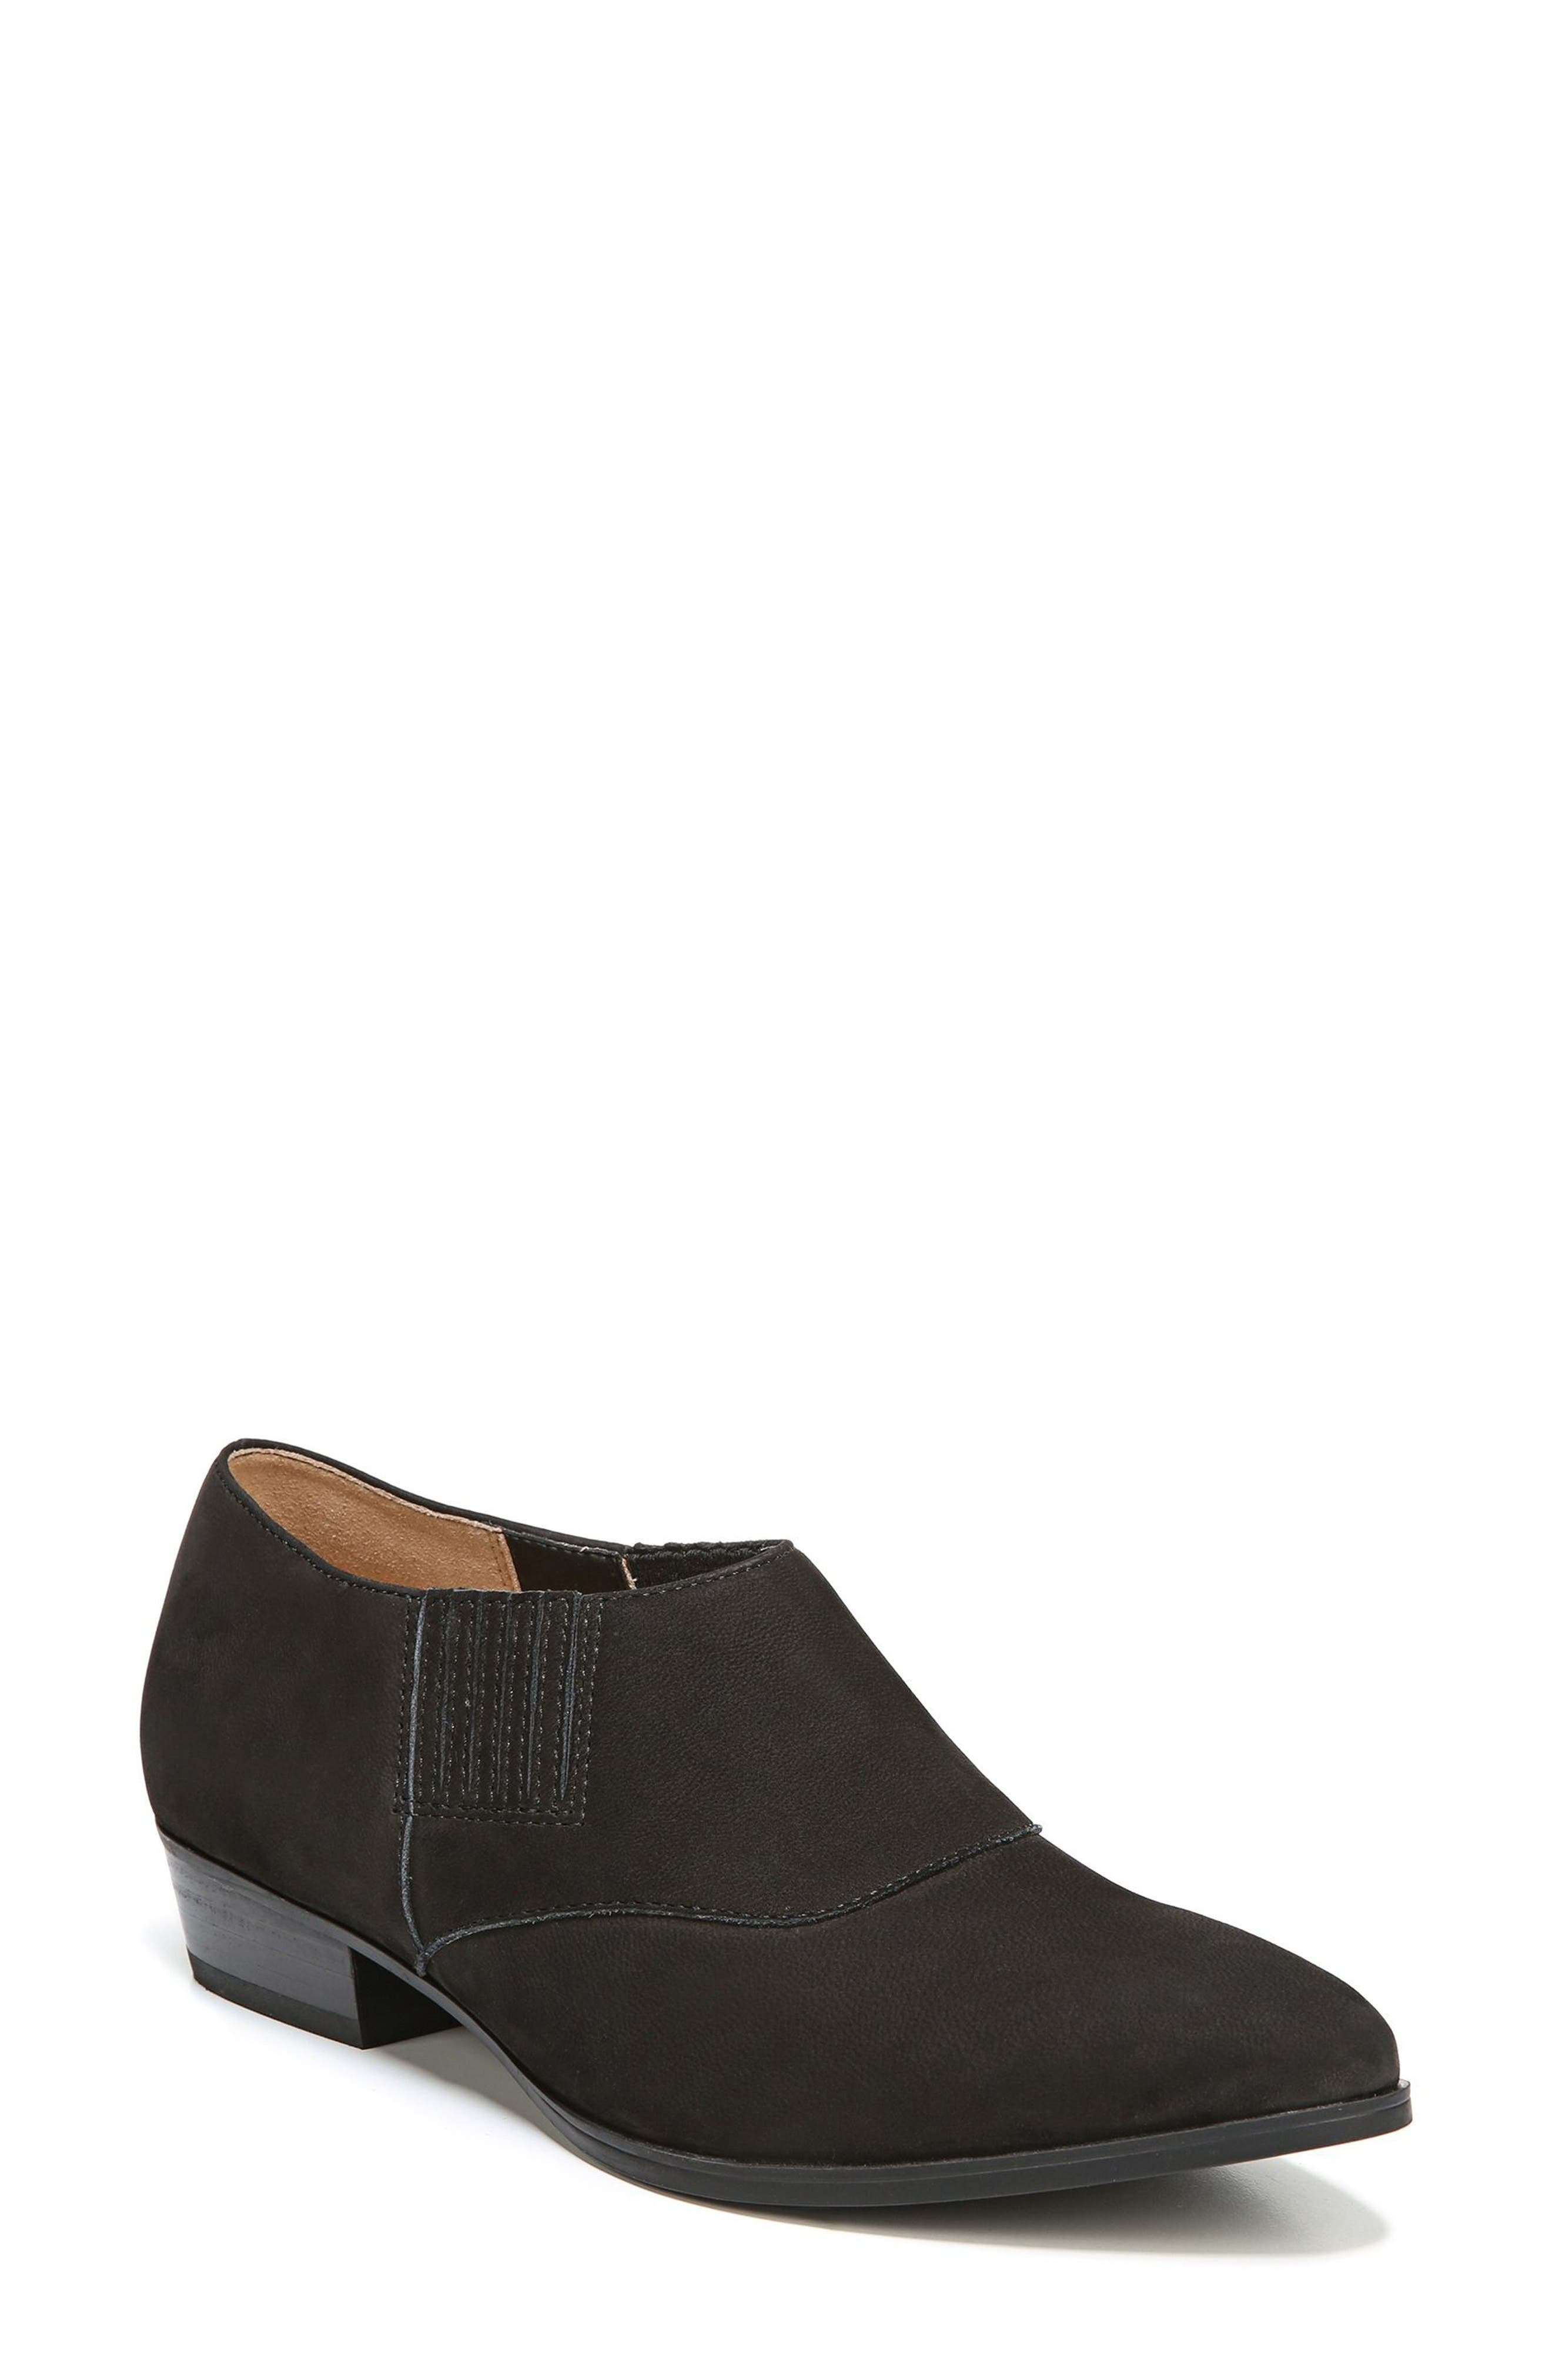 Main Image - Naturalizer Blythe Bootie (Women)